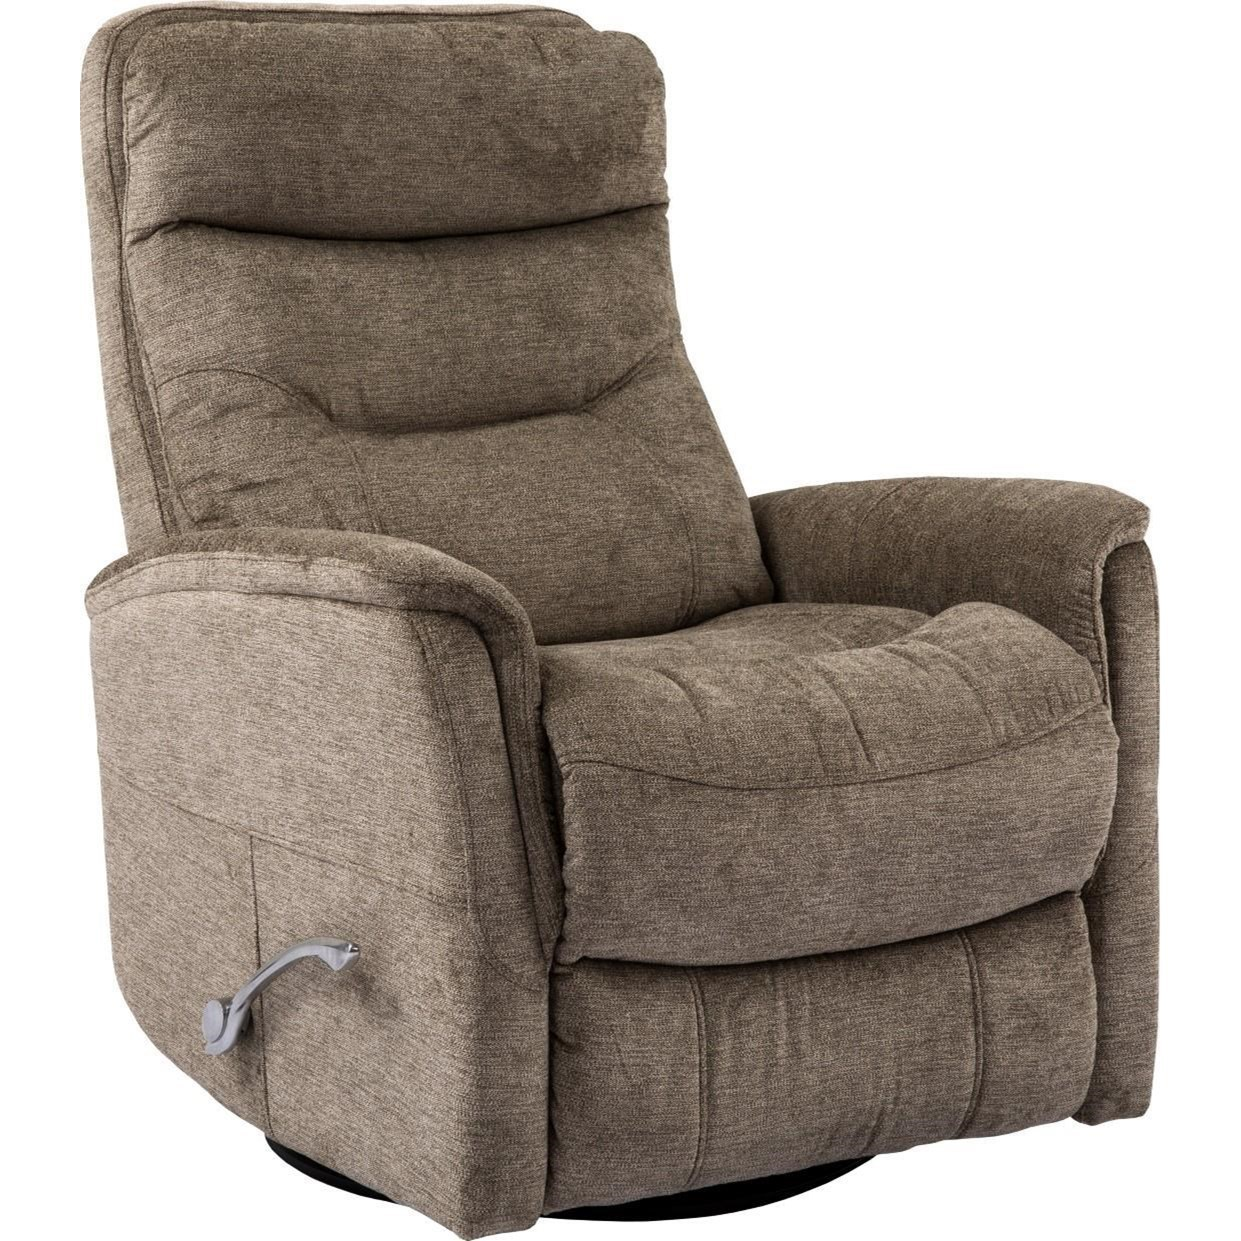 Glider Recliner Monte Design Grano Glider Recliner With  : products2Fparkerliving2Fcolor2Fgemini20mgemmgem 812gs hea b1jpgscaleu003dbothu0026widthu003d500u0026heightu003d500u0026fsharpenu003d25u0026down from aamps.us size 1241 x 1241 jpeg 374kB